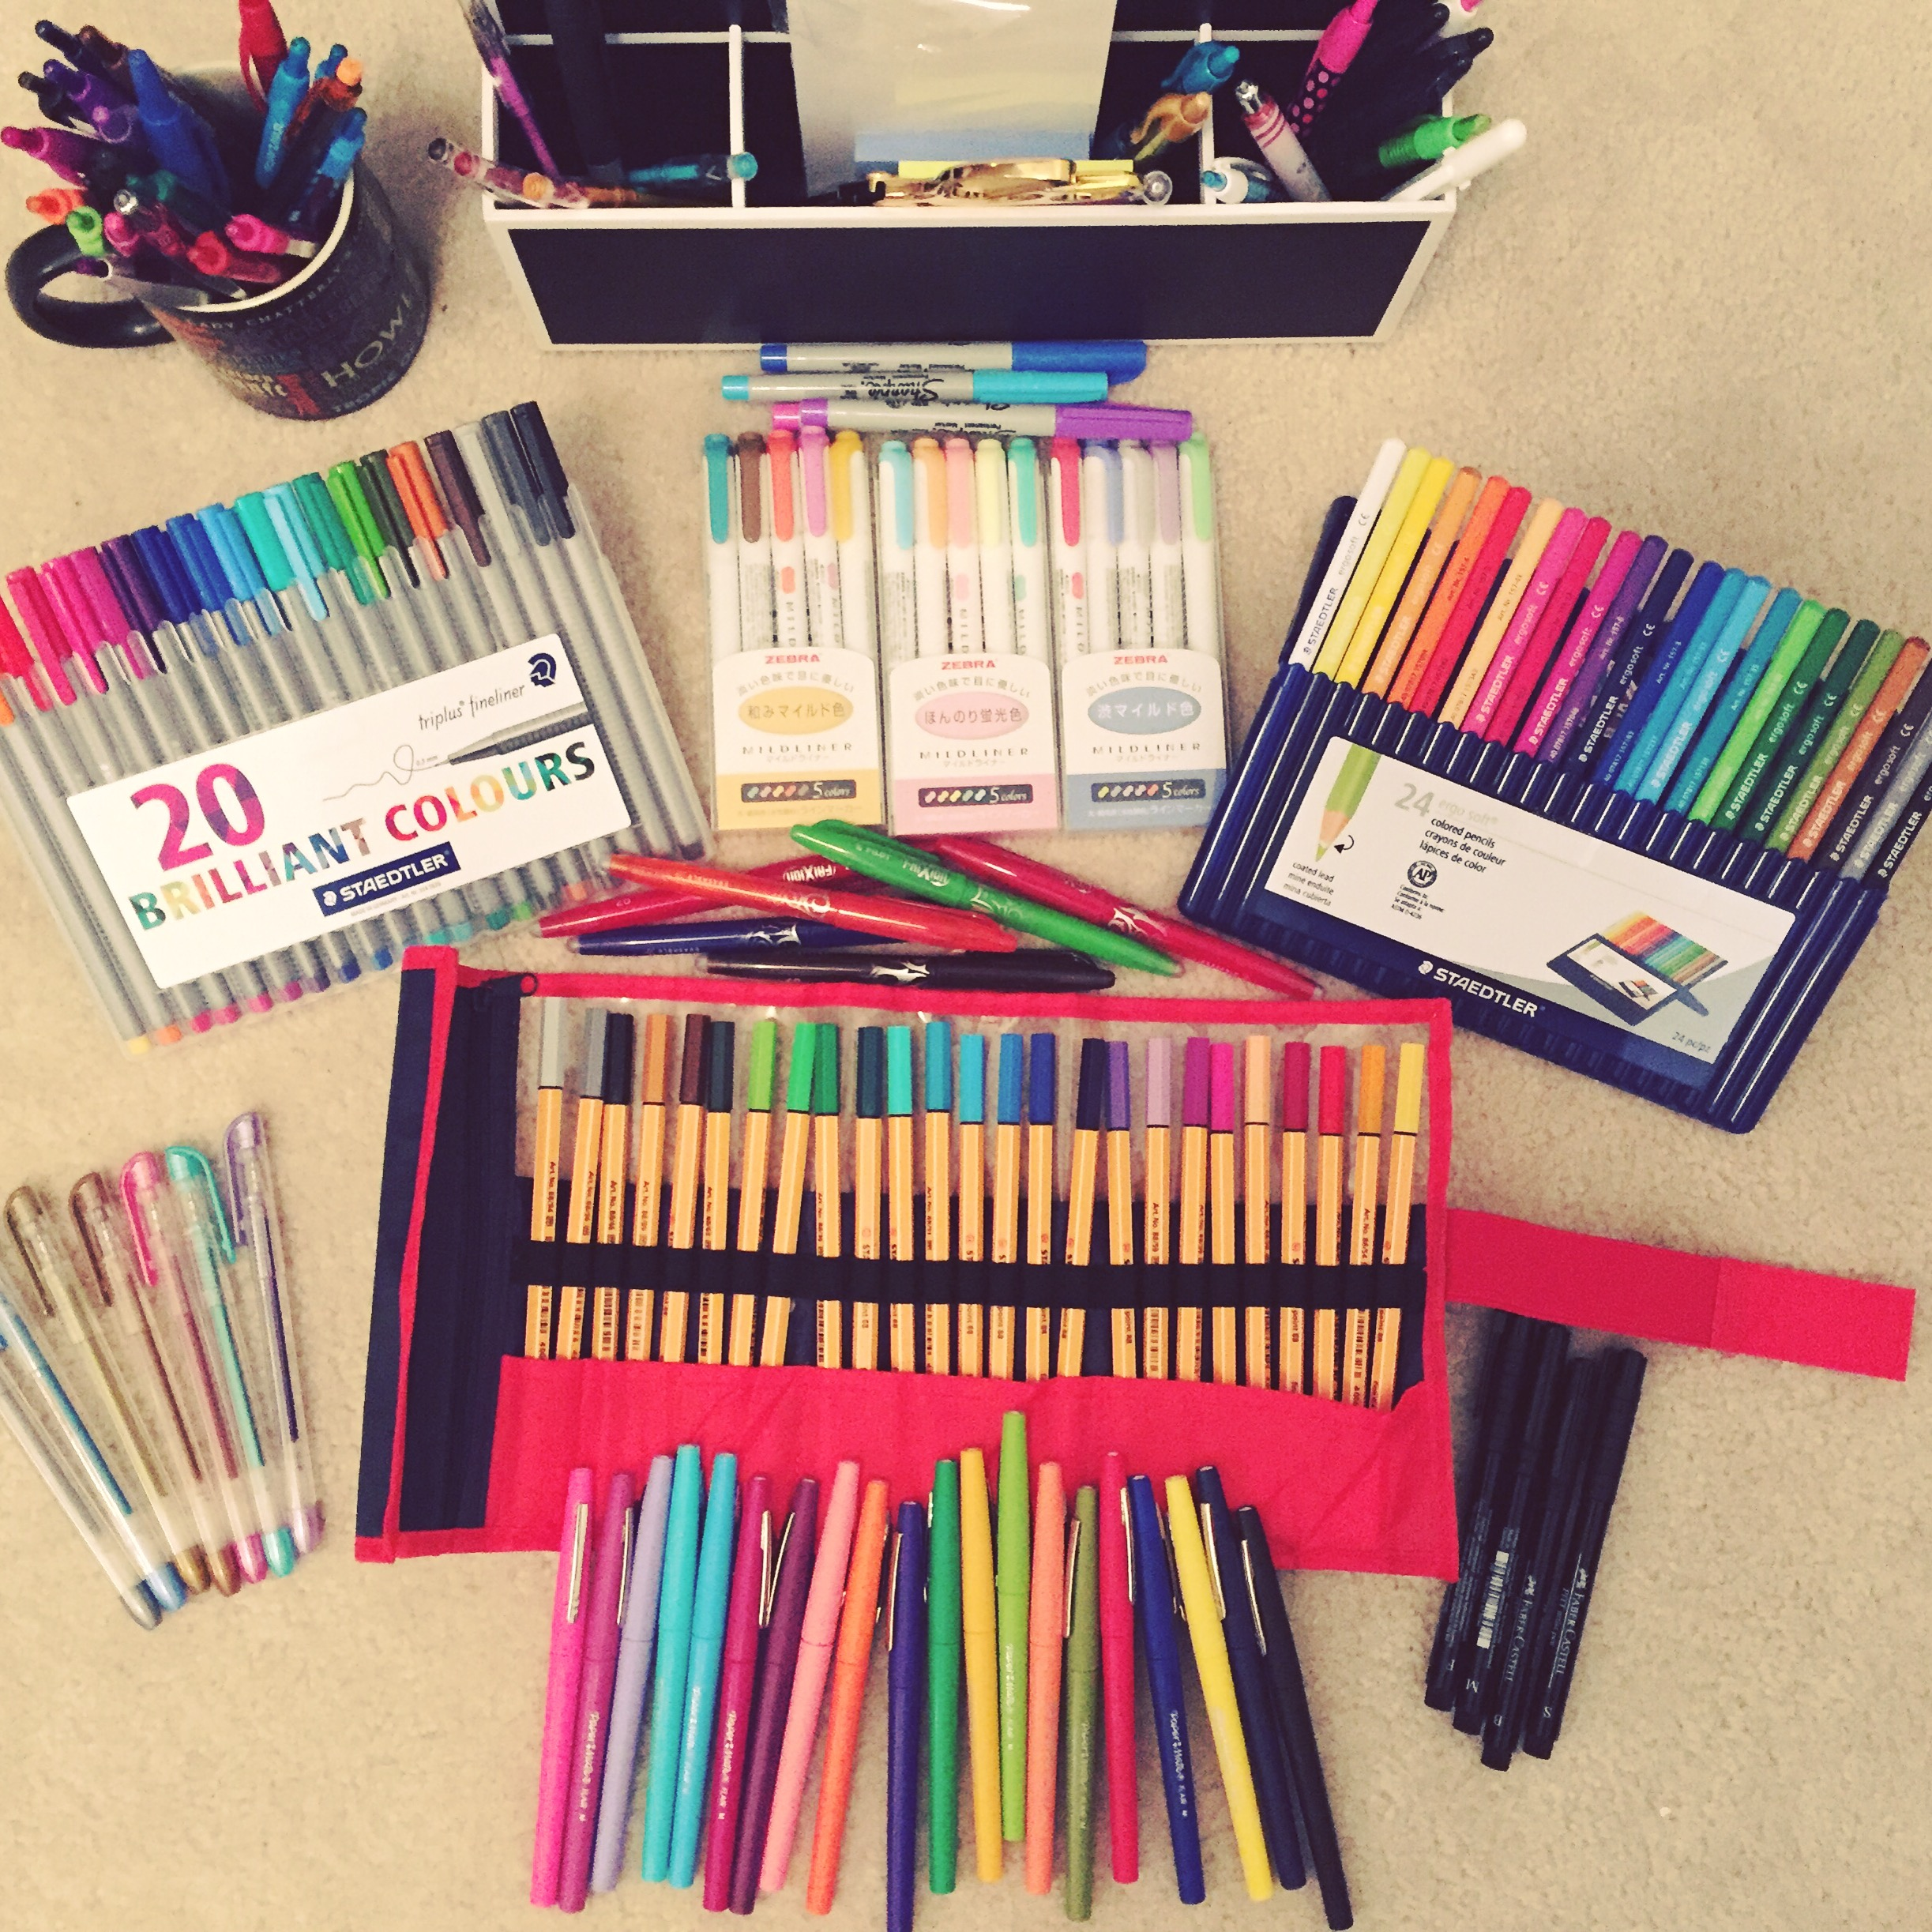 My pen/pencil collection